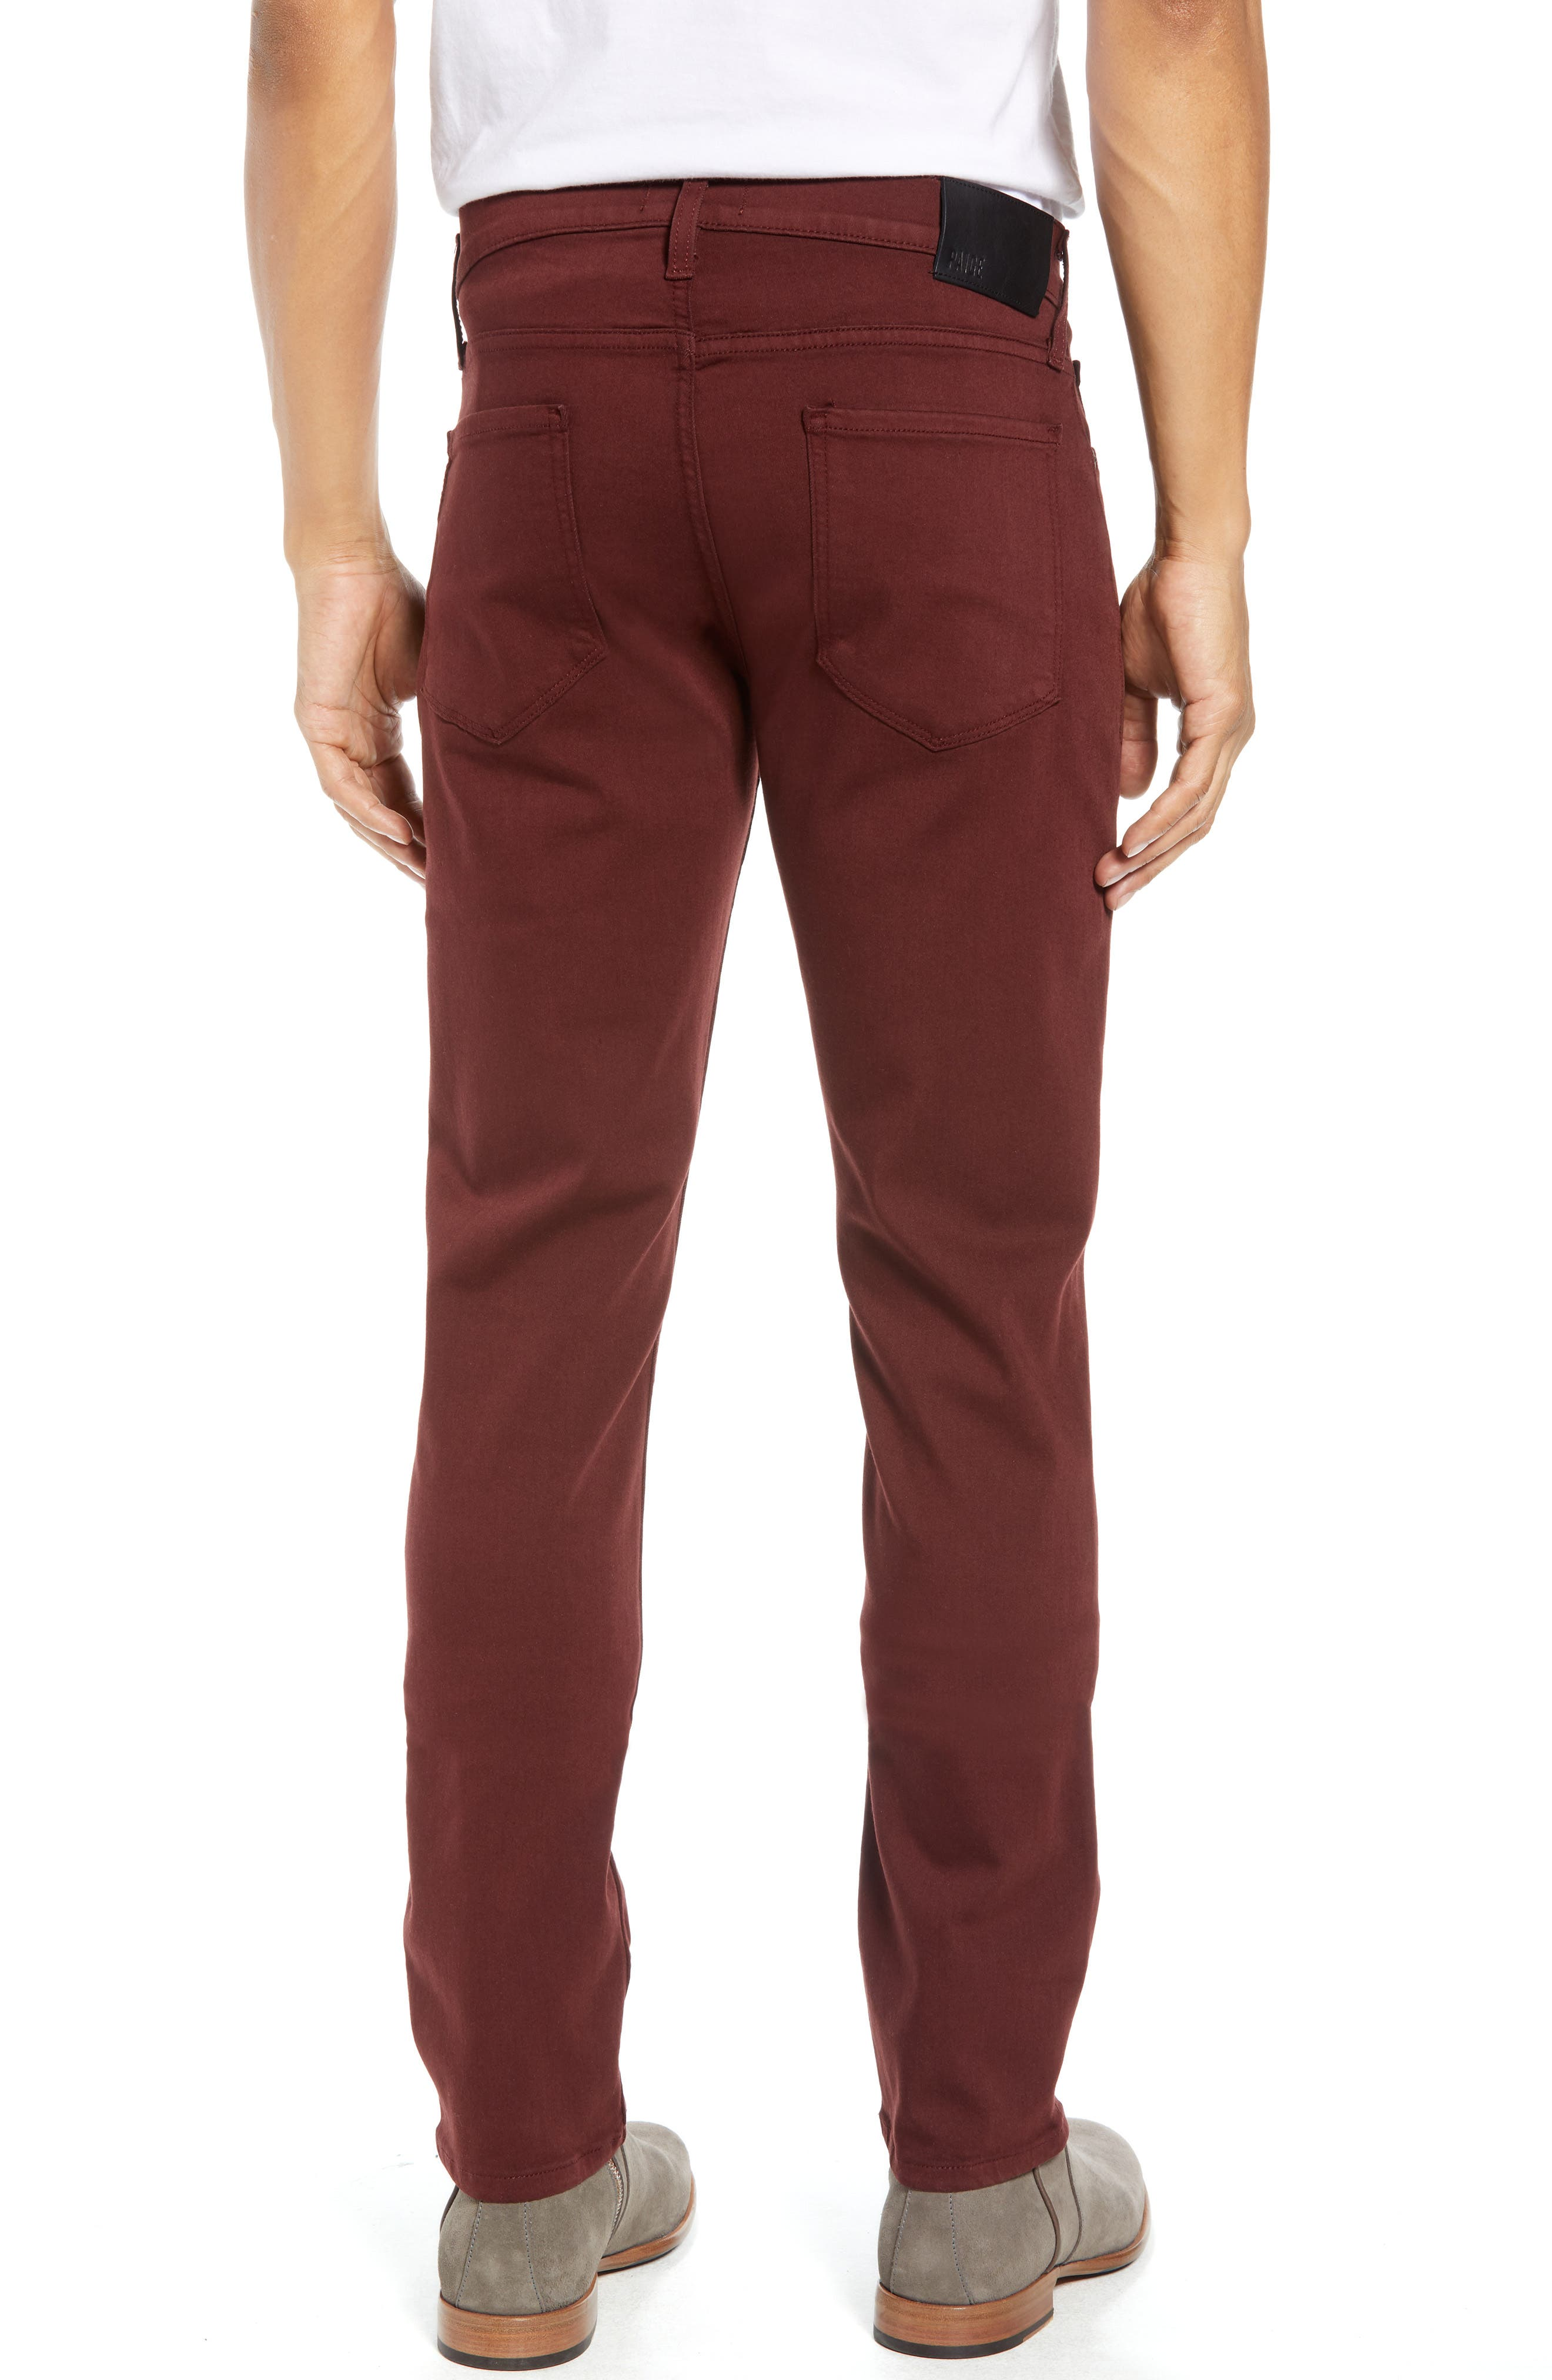 Transcend - Federal Slim Straight Leg Jeans,                             Alternate thumbnail 2, color,                             RUSTIC WINE